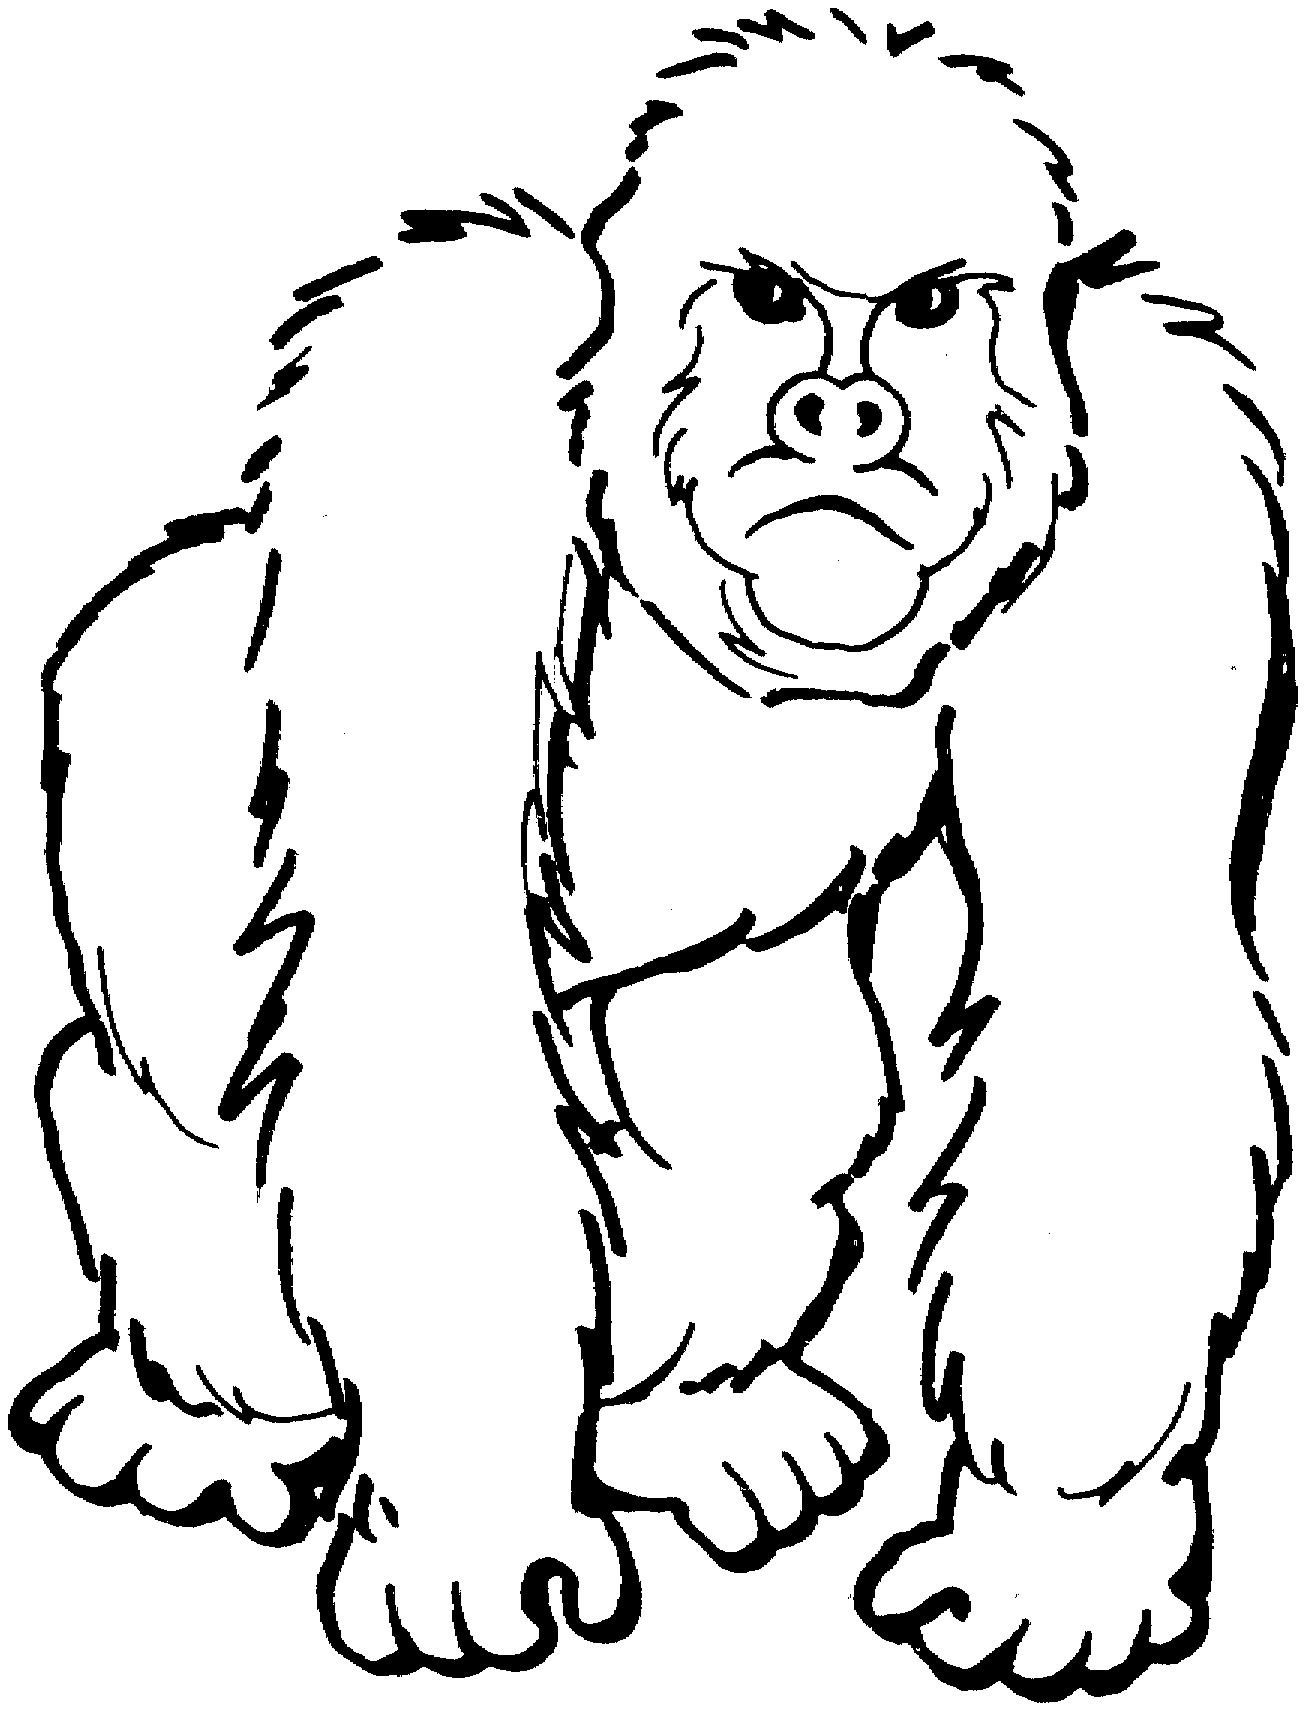 gorilla coloring pages - gorilla coloring pages